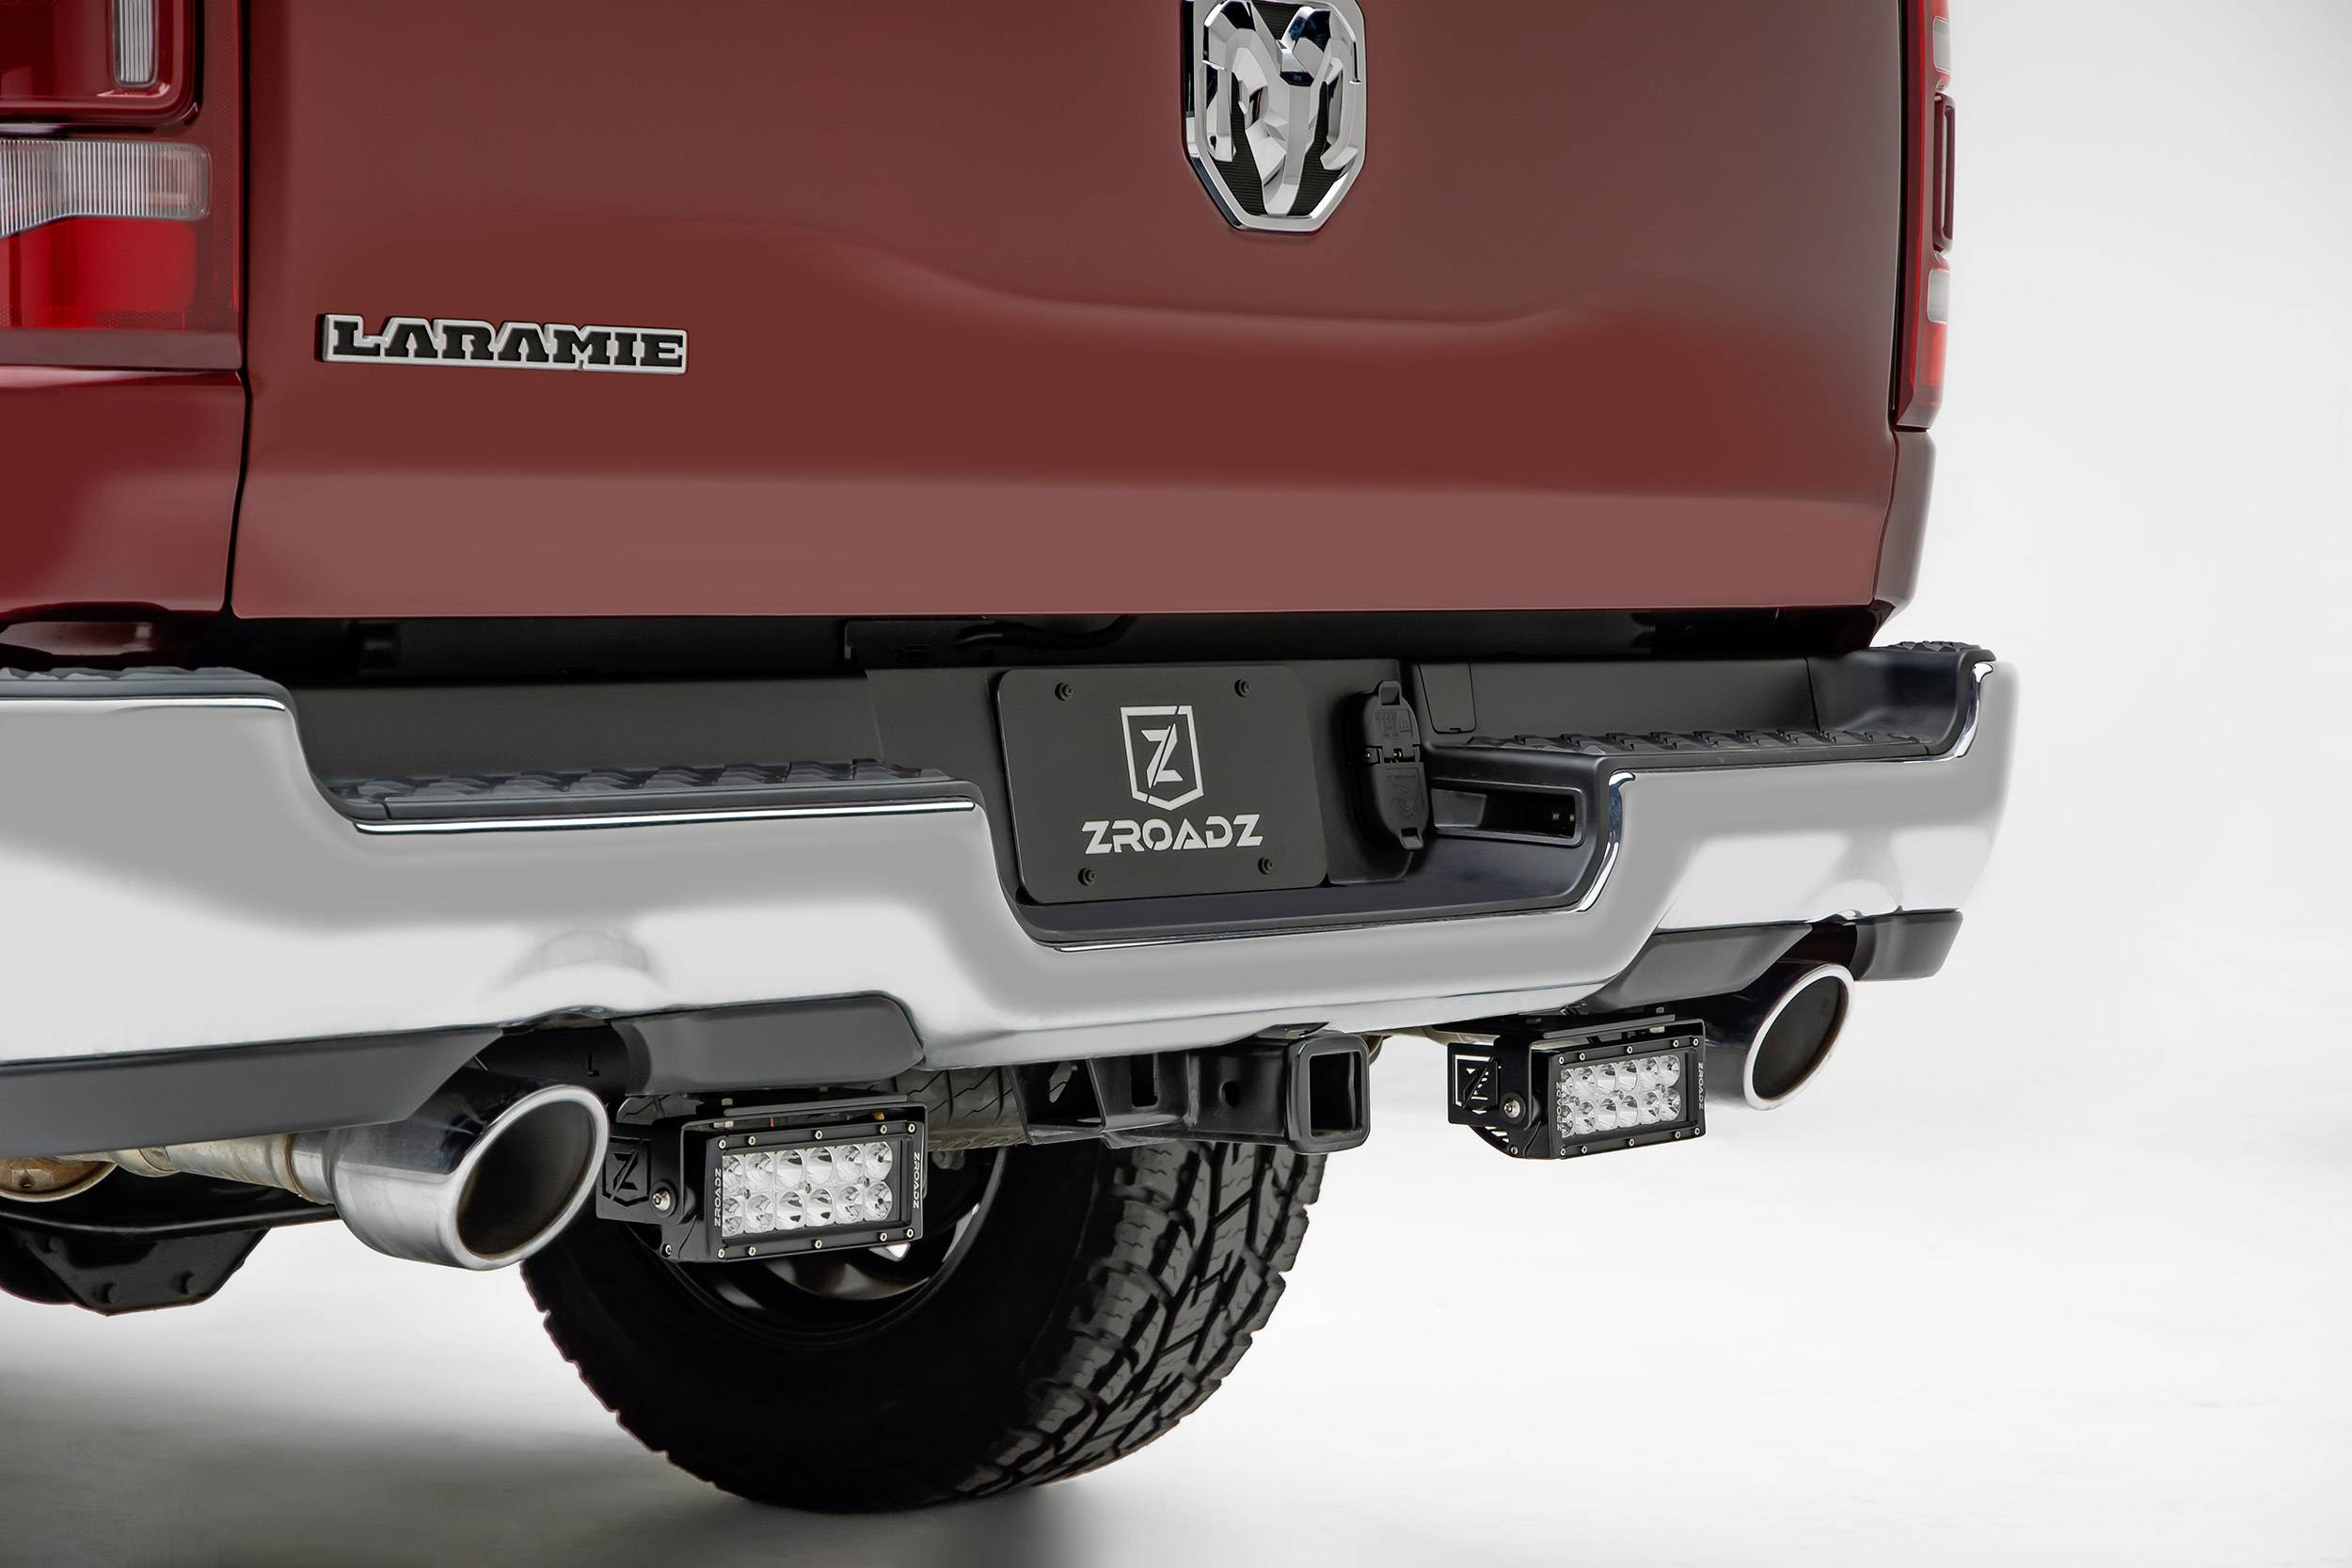 ZROADZ                                             - 2019-2021 Ram 1500 Rear Bumper LED Kit with (2) 6 Inch LED Straight Double Row Light Bars - PN #Z384721-KIT